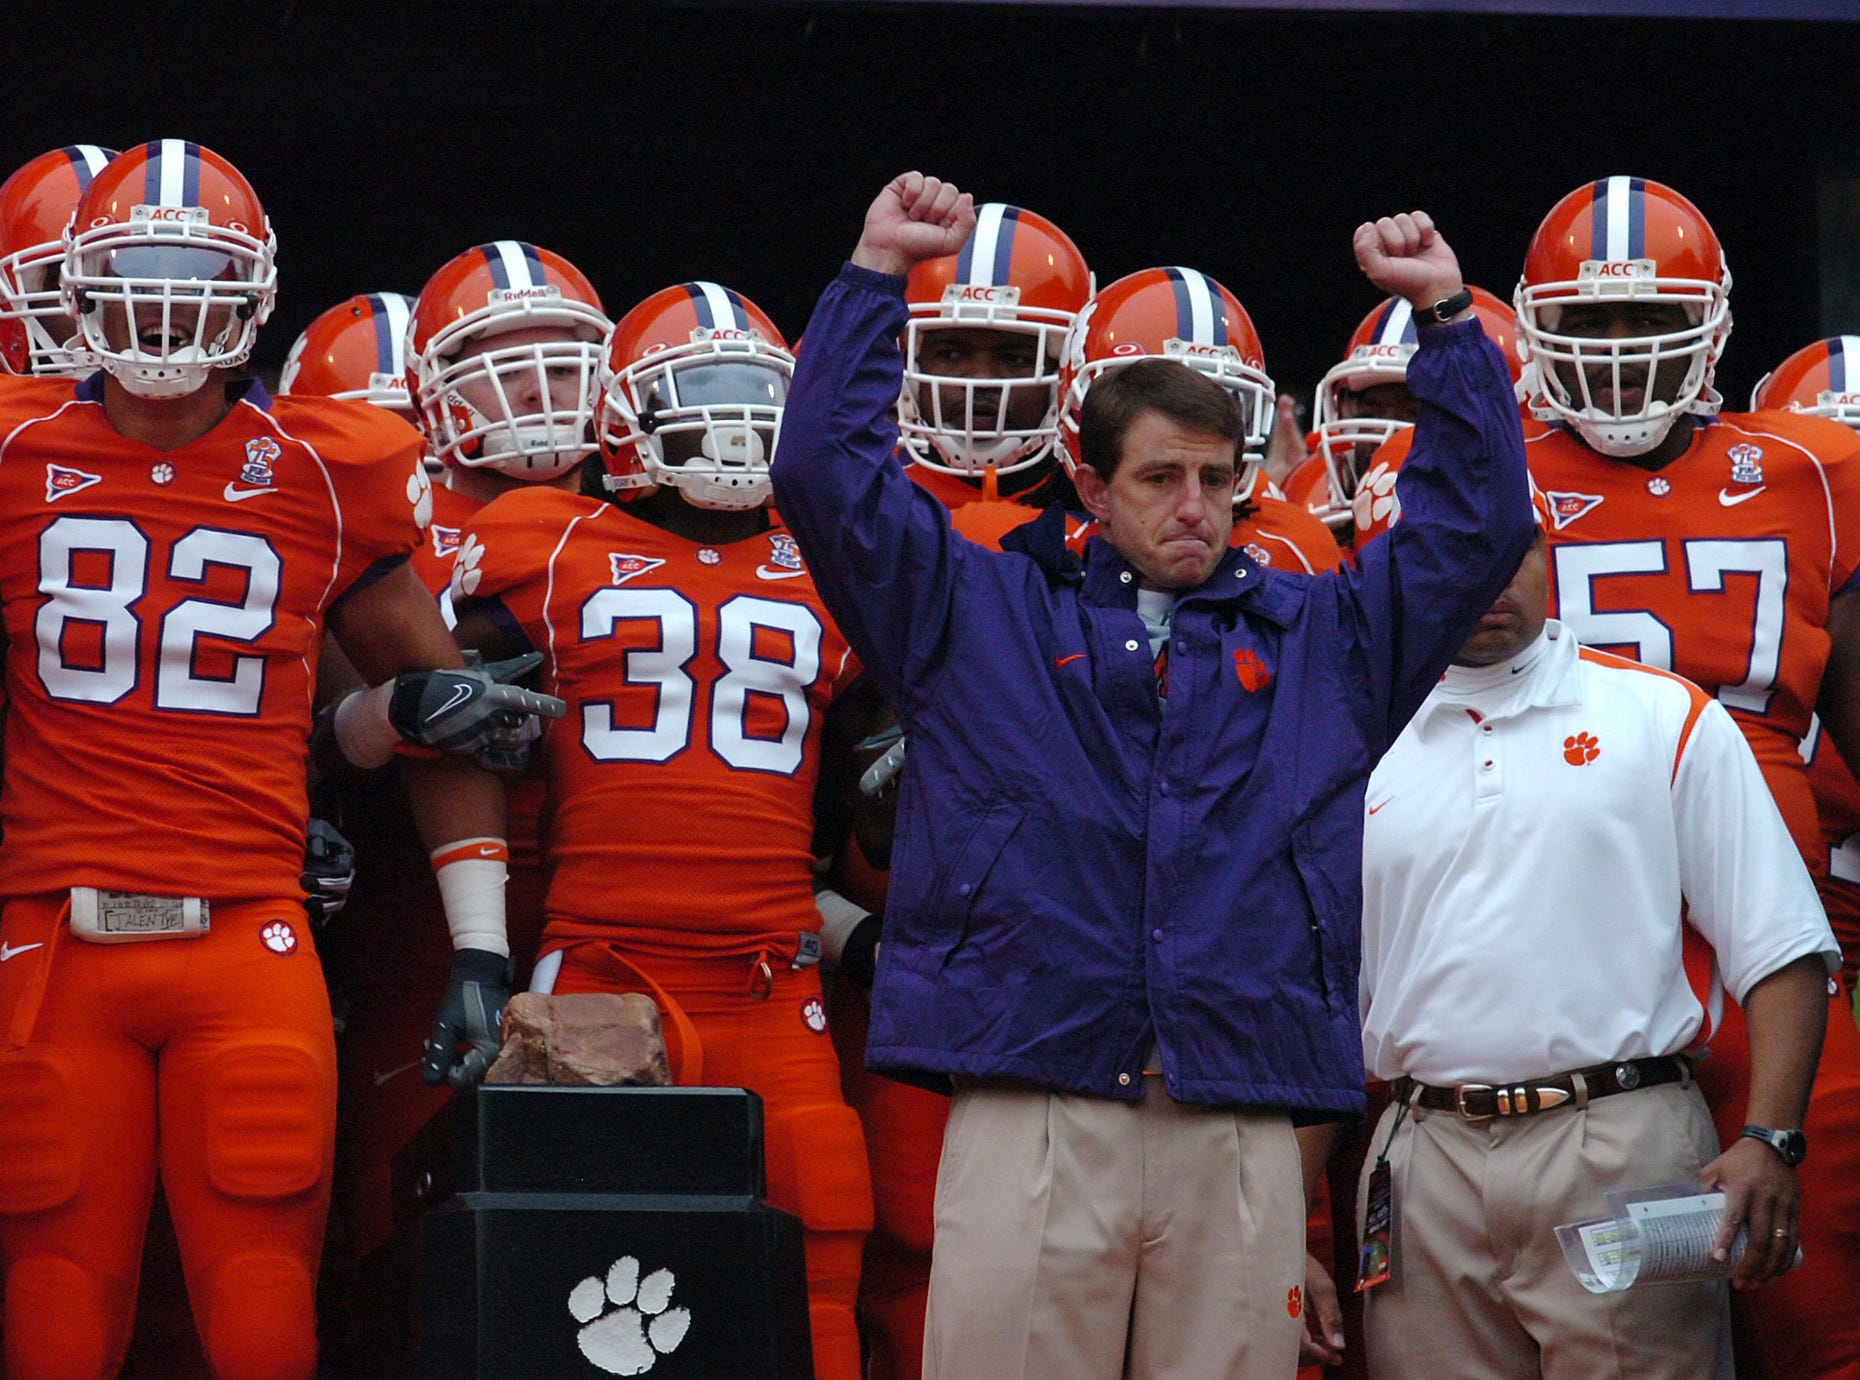 Clemson interim head coach Dabo Swinney stands with his team before running down the hill Saturday, November 29, 2008 at Clemson's Memorial Stadium.